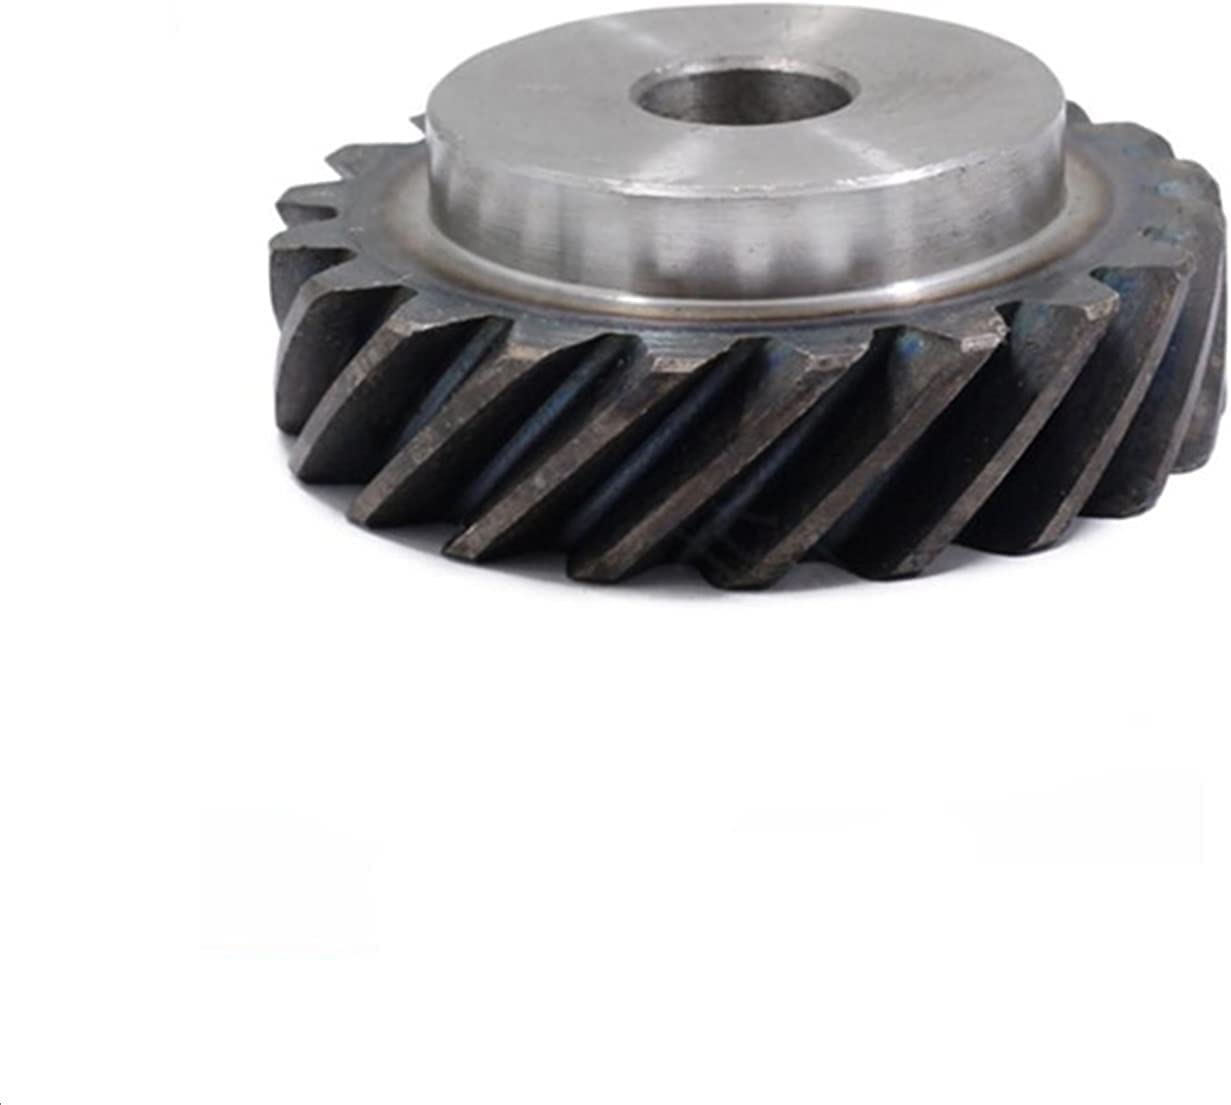 TONGCHAO Tchaogr Rack Gear 2M Teeth Helical Pinion Limited time trial Max 78% OFF price 30